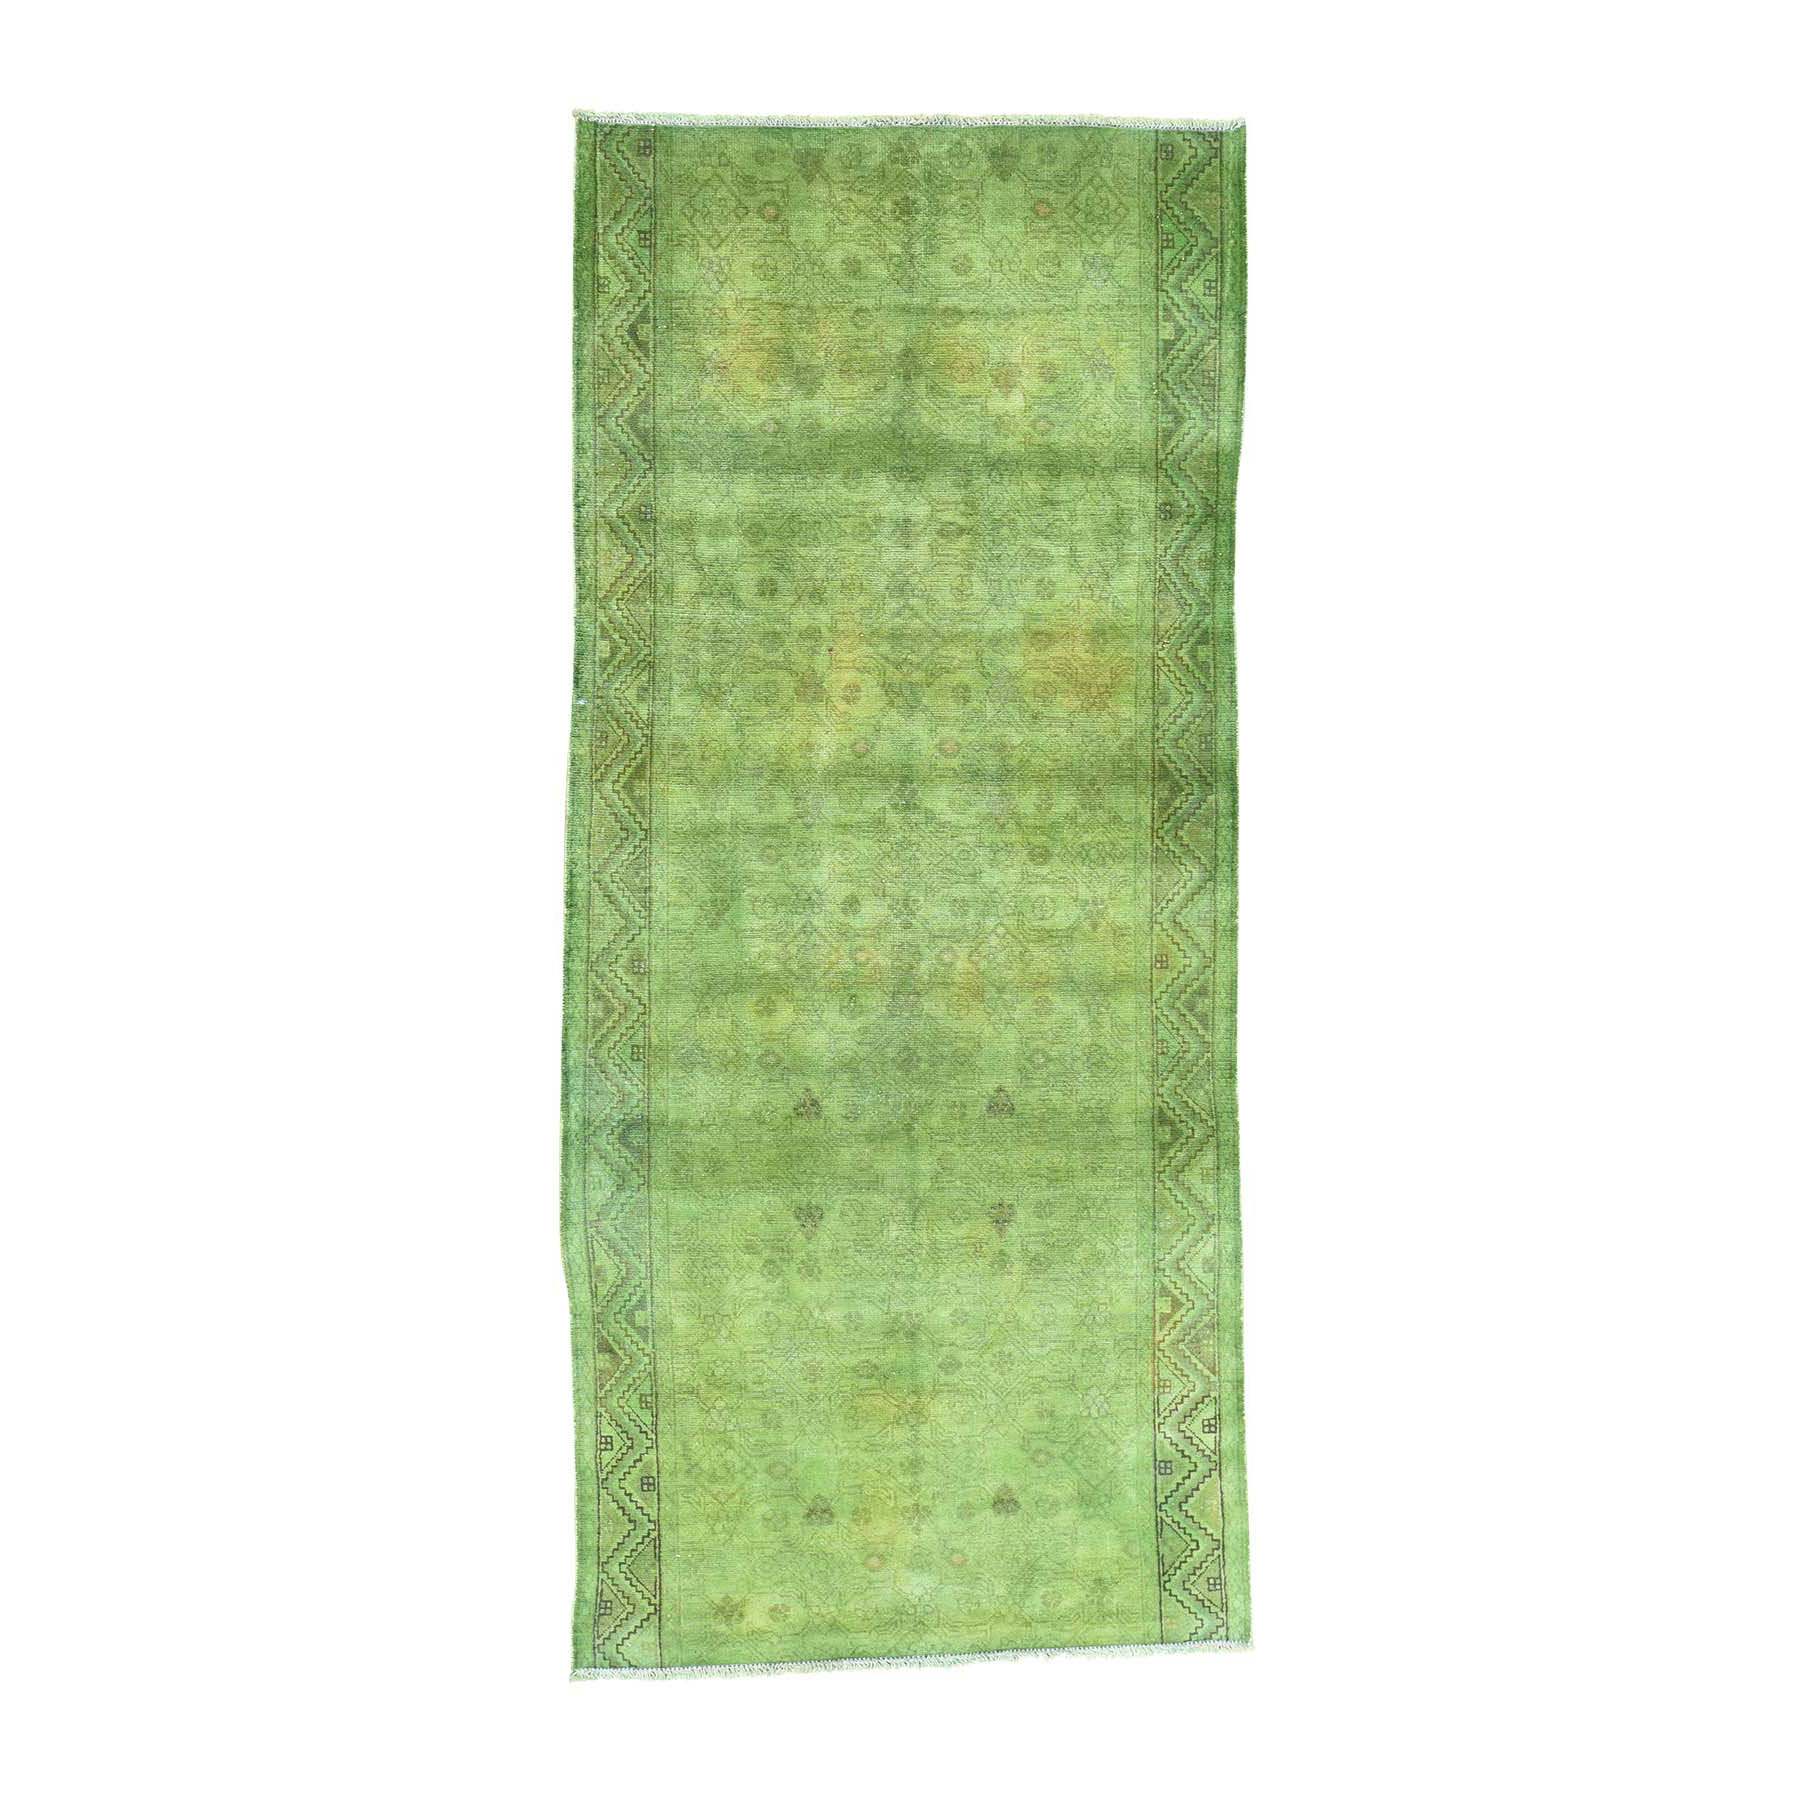 Fetneh Collection And Vintage Overdyed Collection Hand Knotted Green Rug No: 0160874